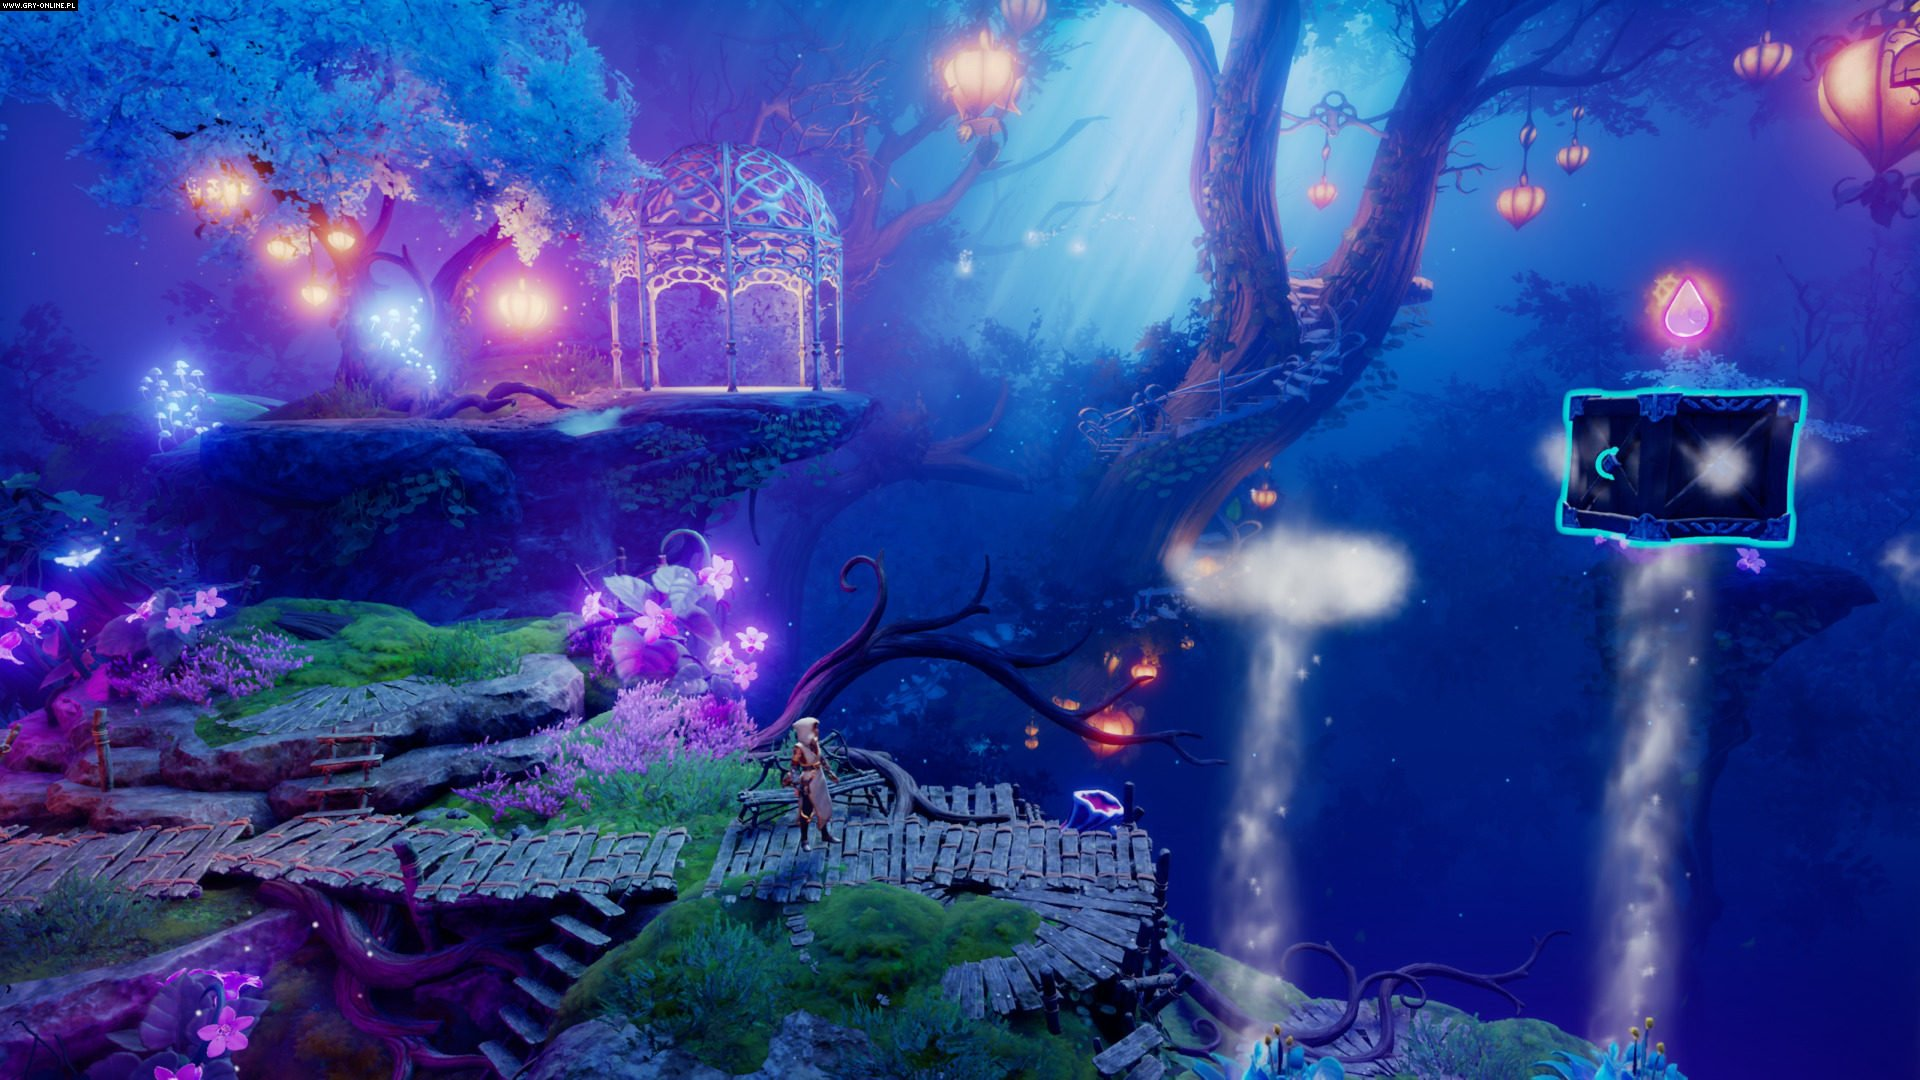 Trine 4: The Nightmare Prince PC, PS4, XONE, Switch Games Image 5/45, Frozenbyte, Modus Games